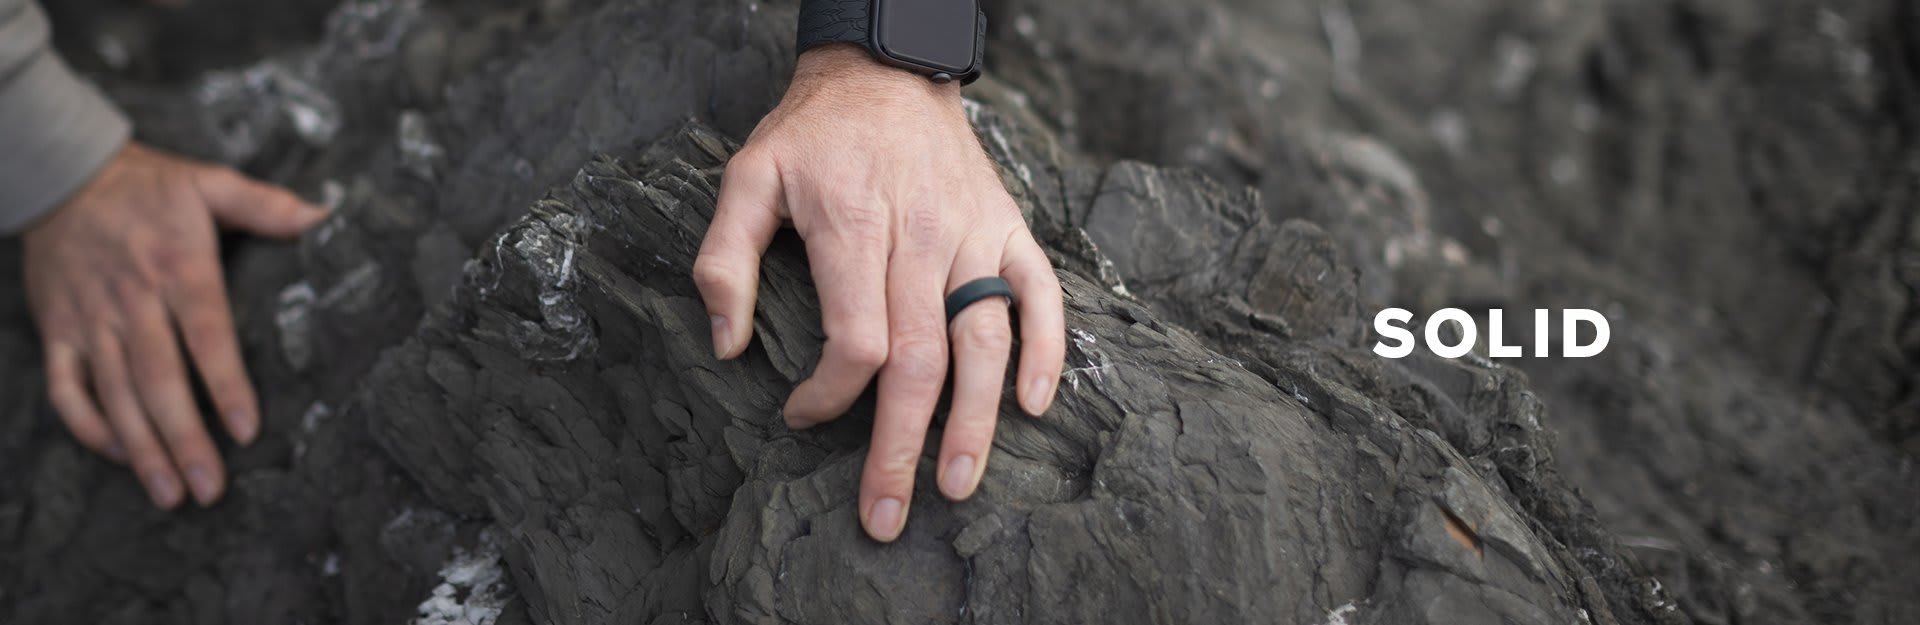 Solid, a man's hand grips a rock and displays his groove ring